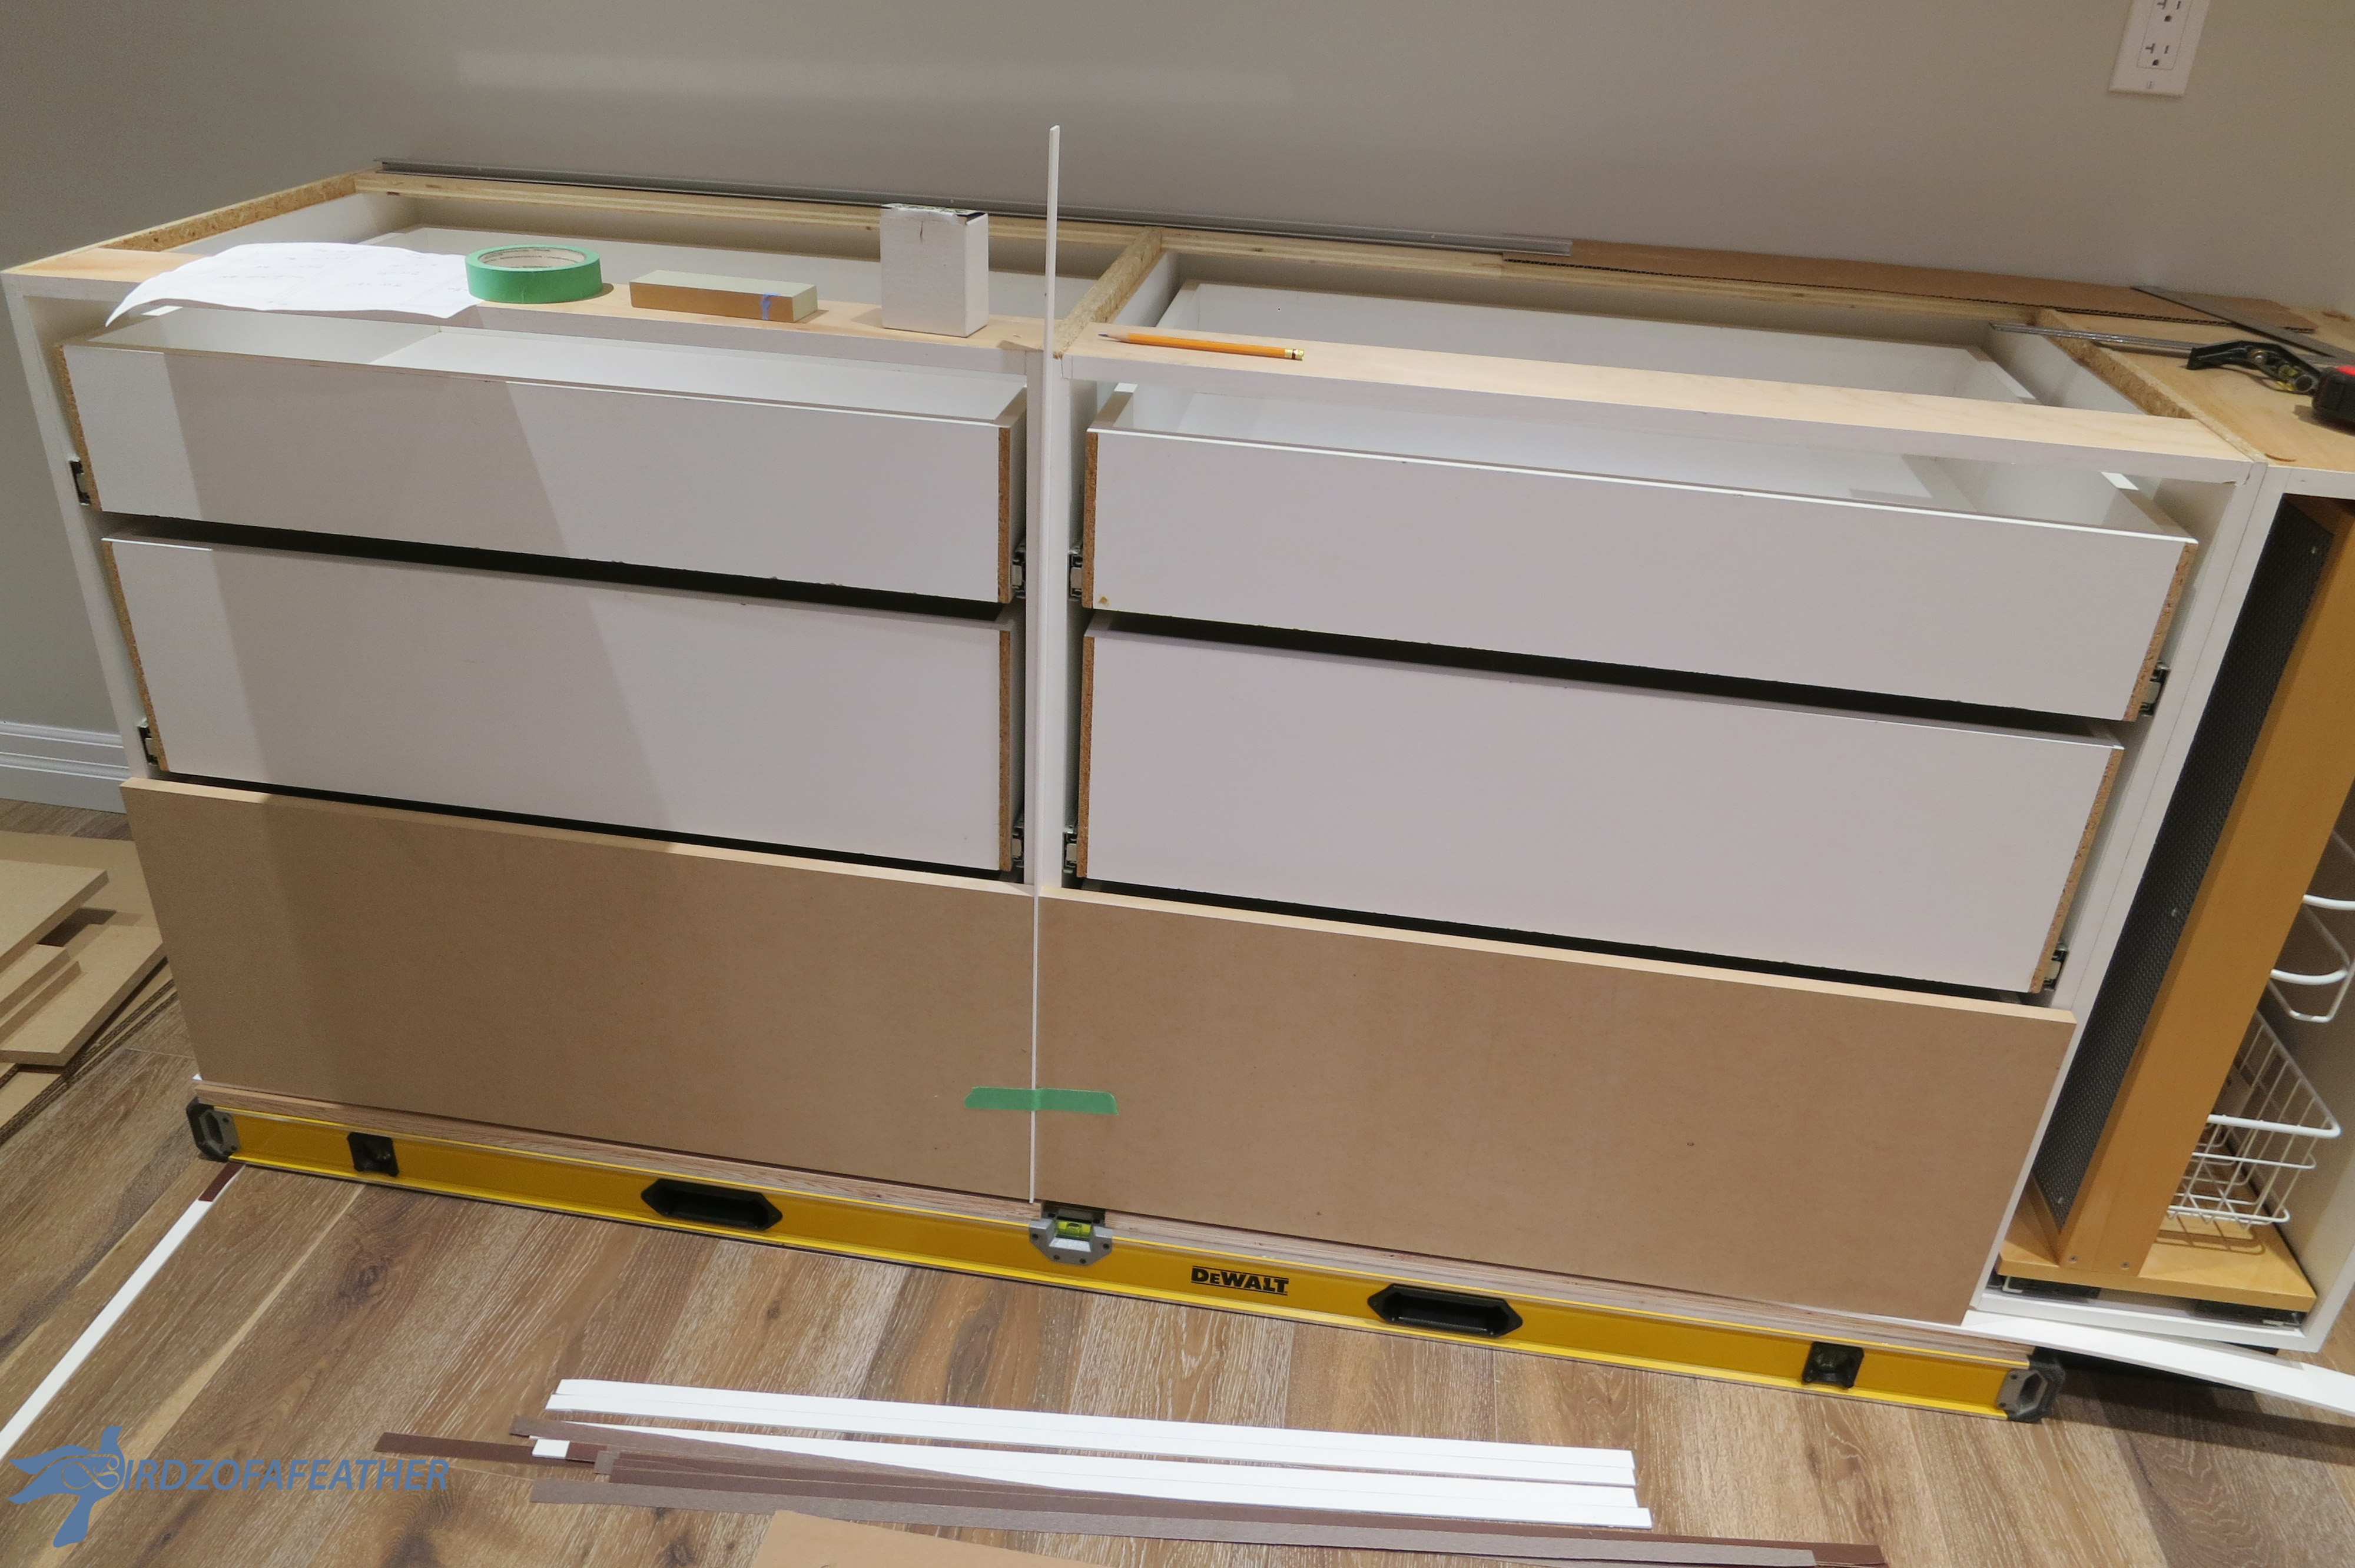 Picture of Install Drawer Fronts (Temporarily)